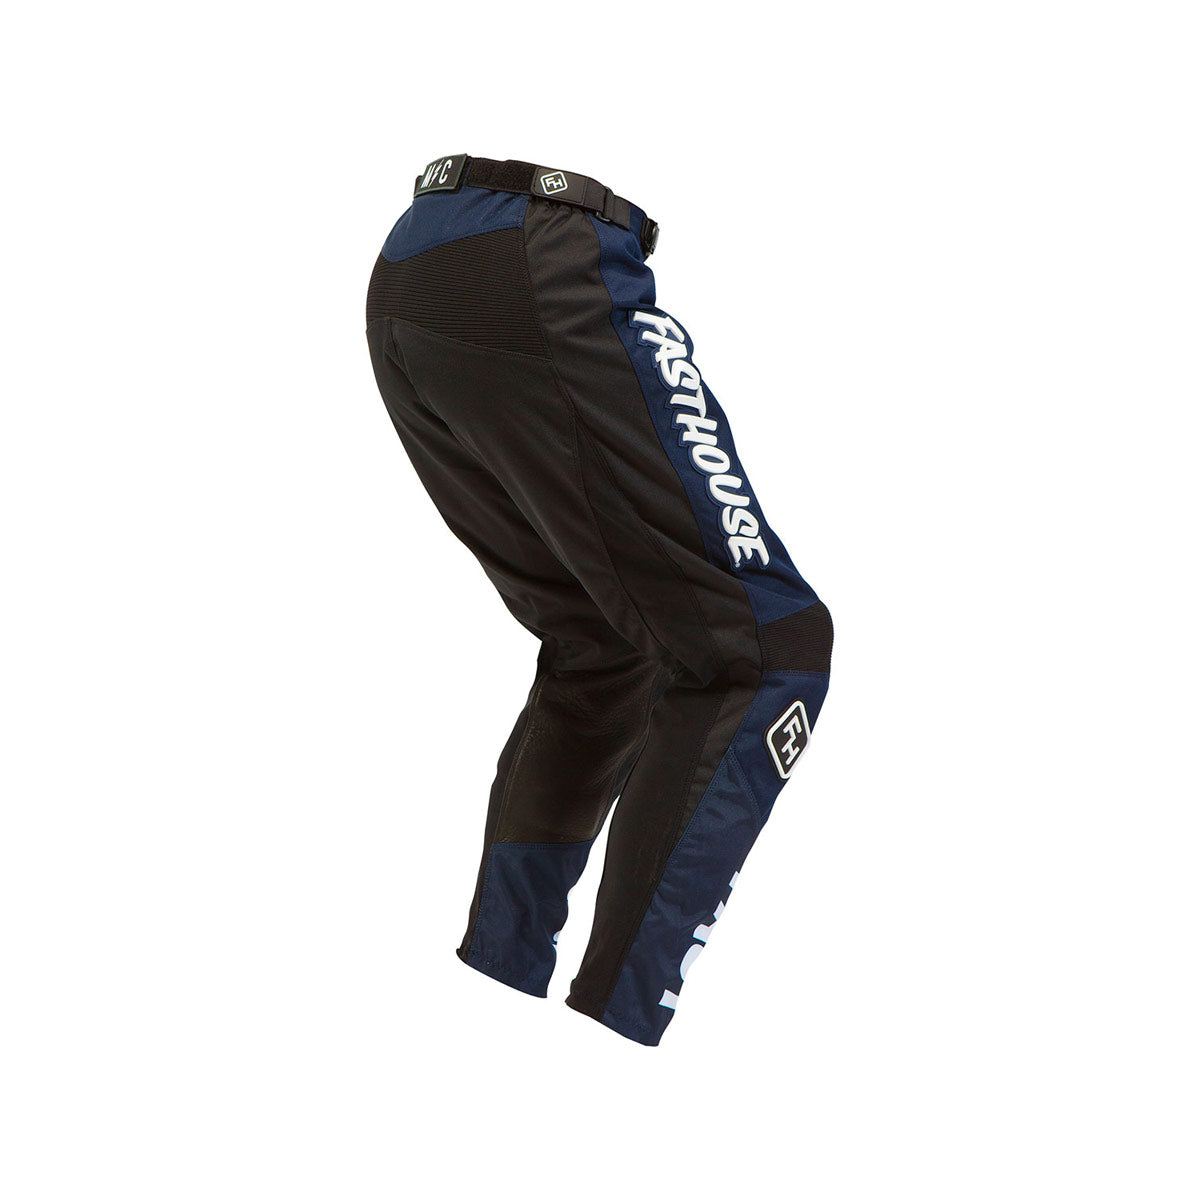 Grindhouse Youth Pant - Navy